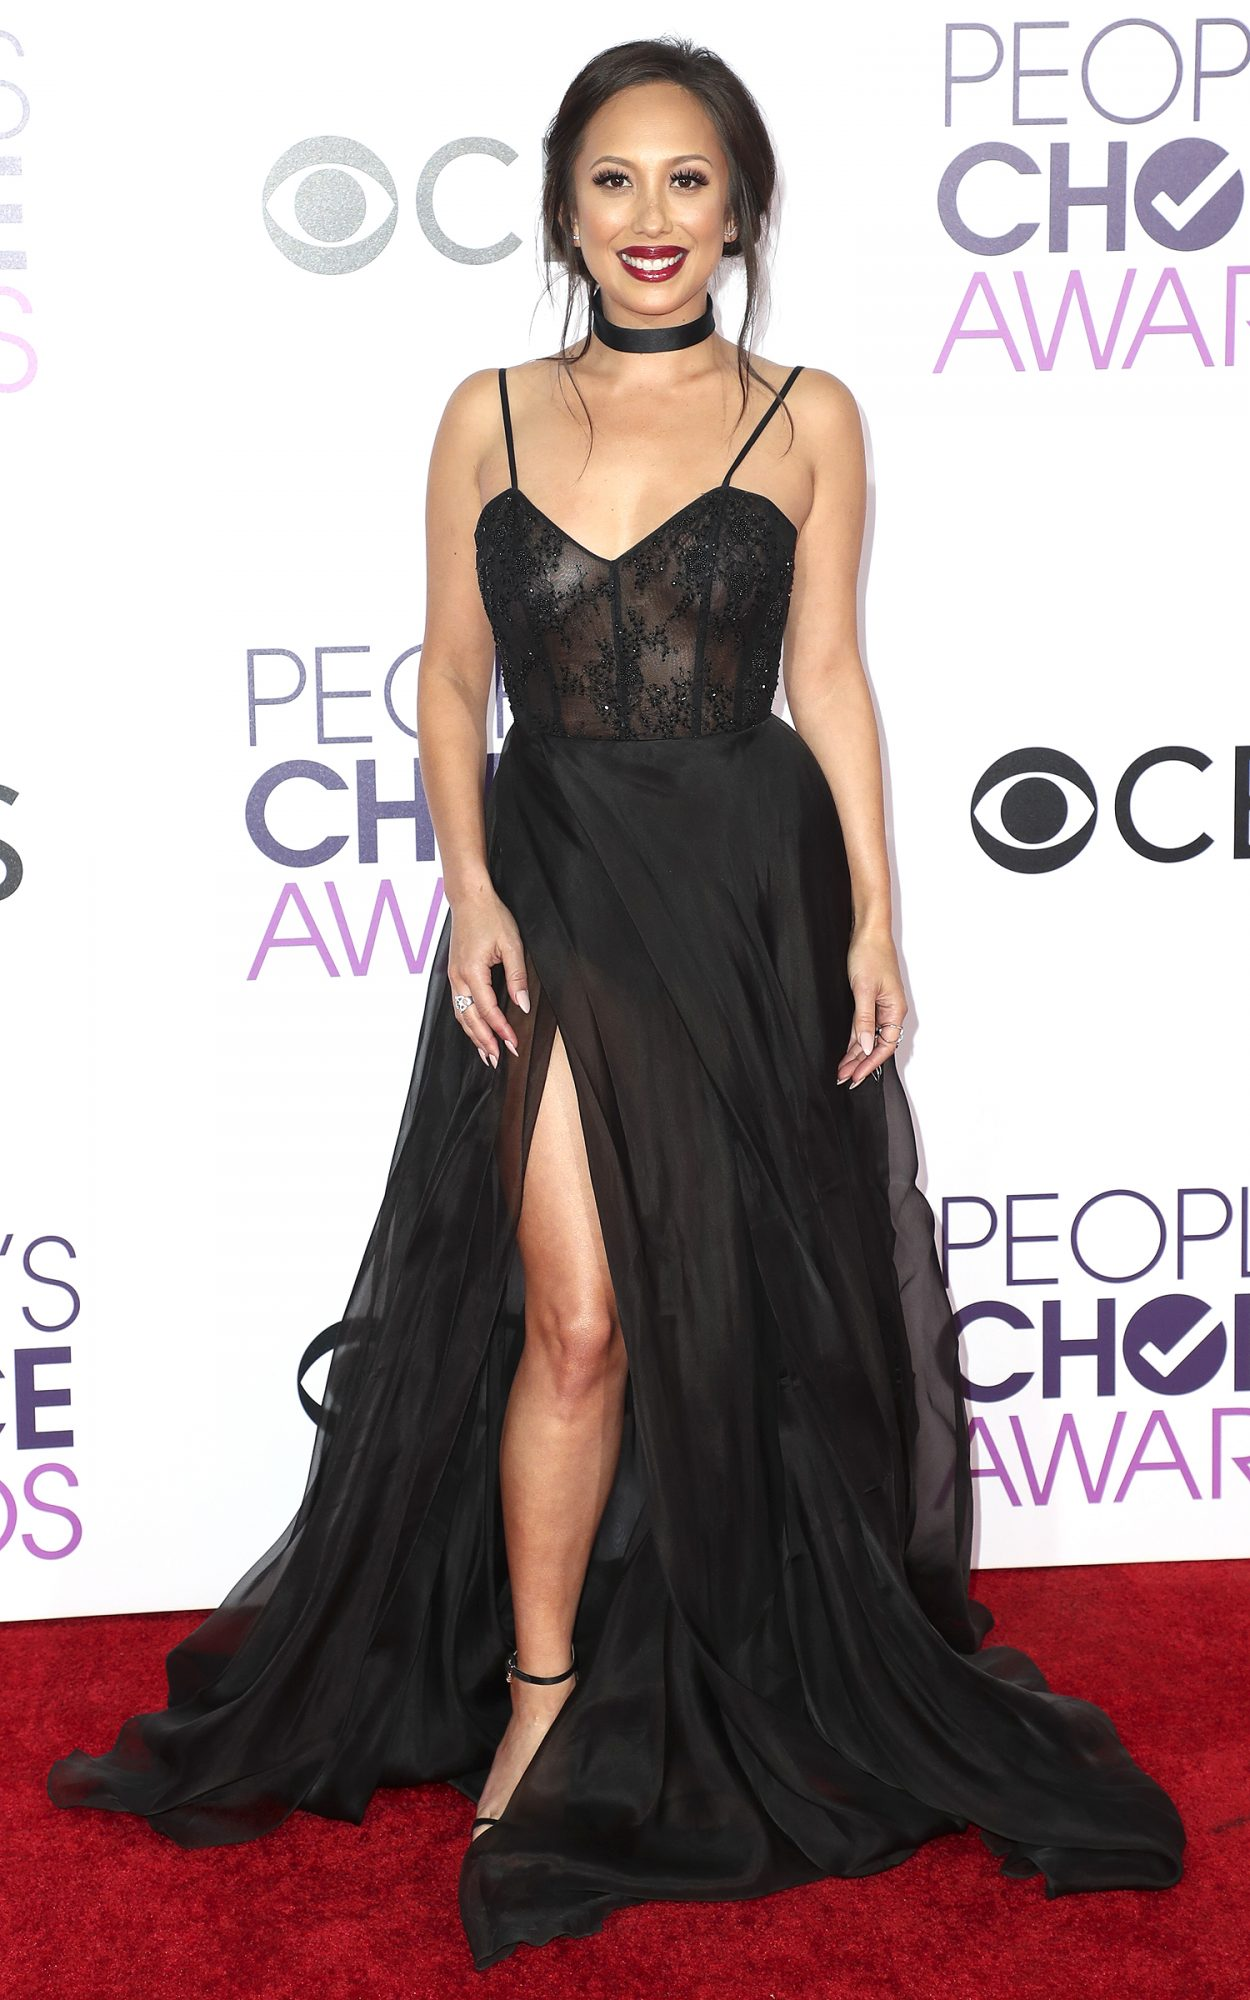 43rd Annual People's Choice Awards, Arrivals, Los Angeles, USA - 18 Jan 2017